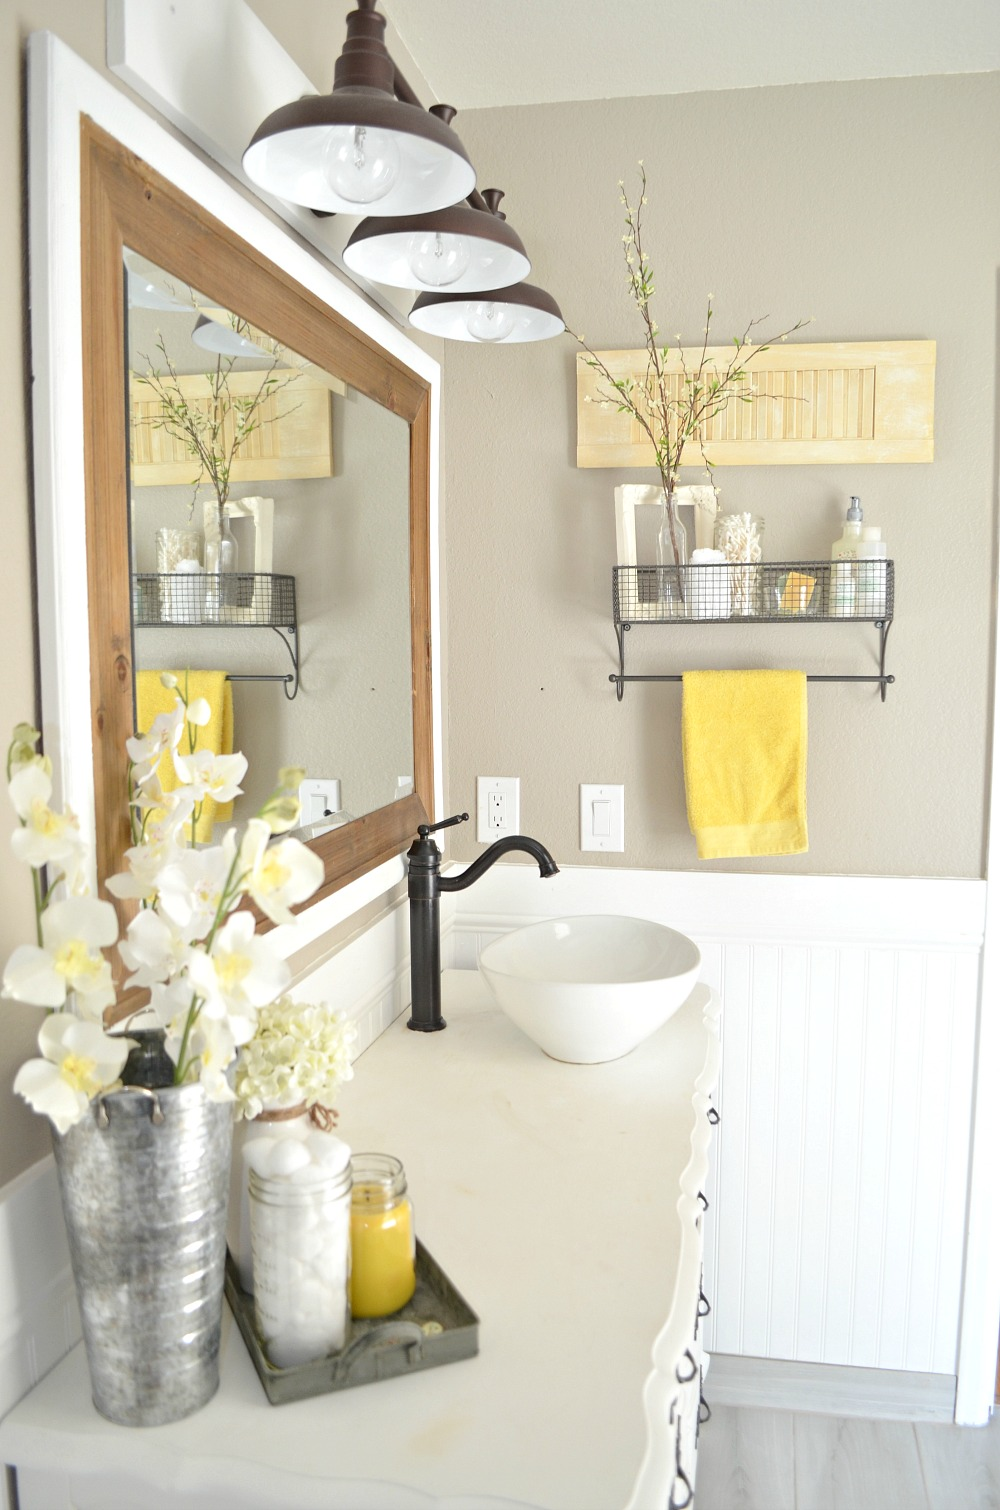 How to easily mix vintage and modern decor little for Art for bathroom ideas